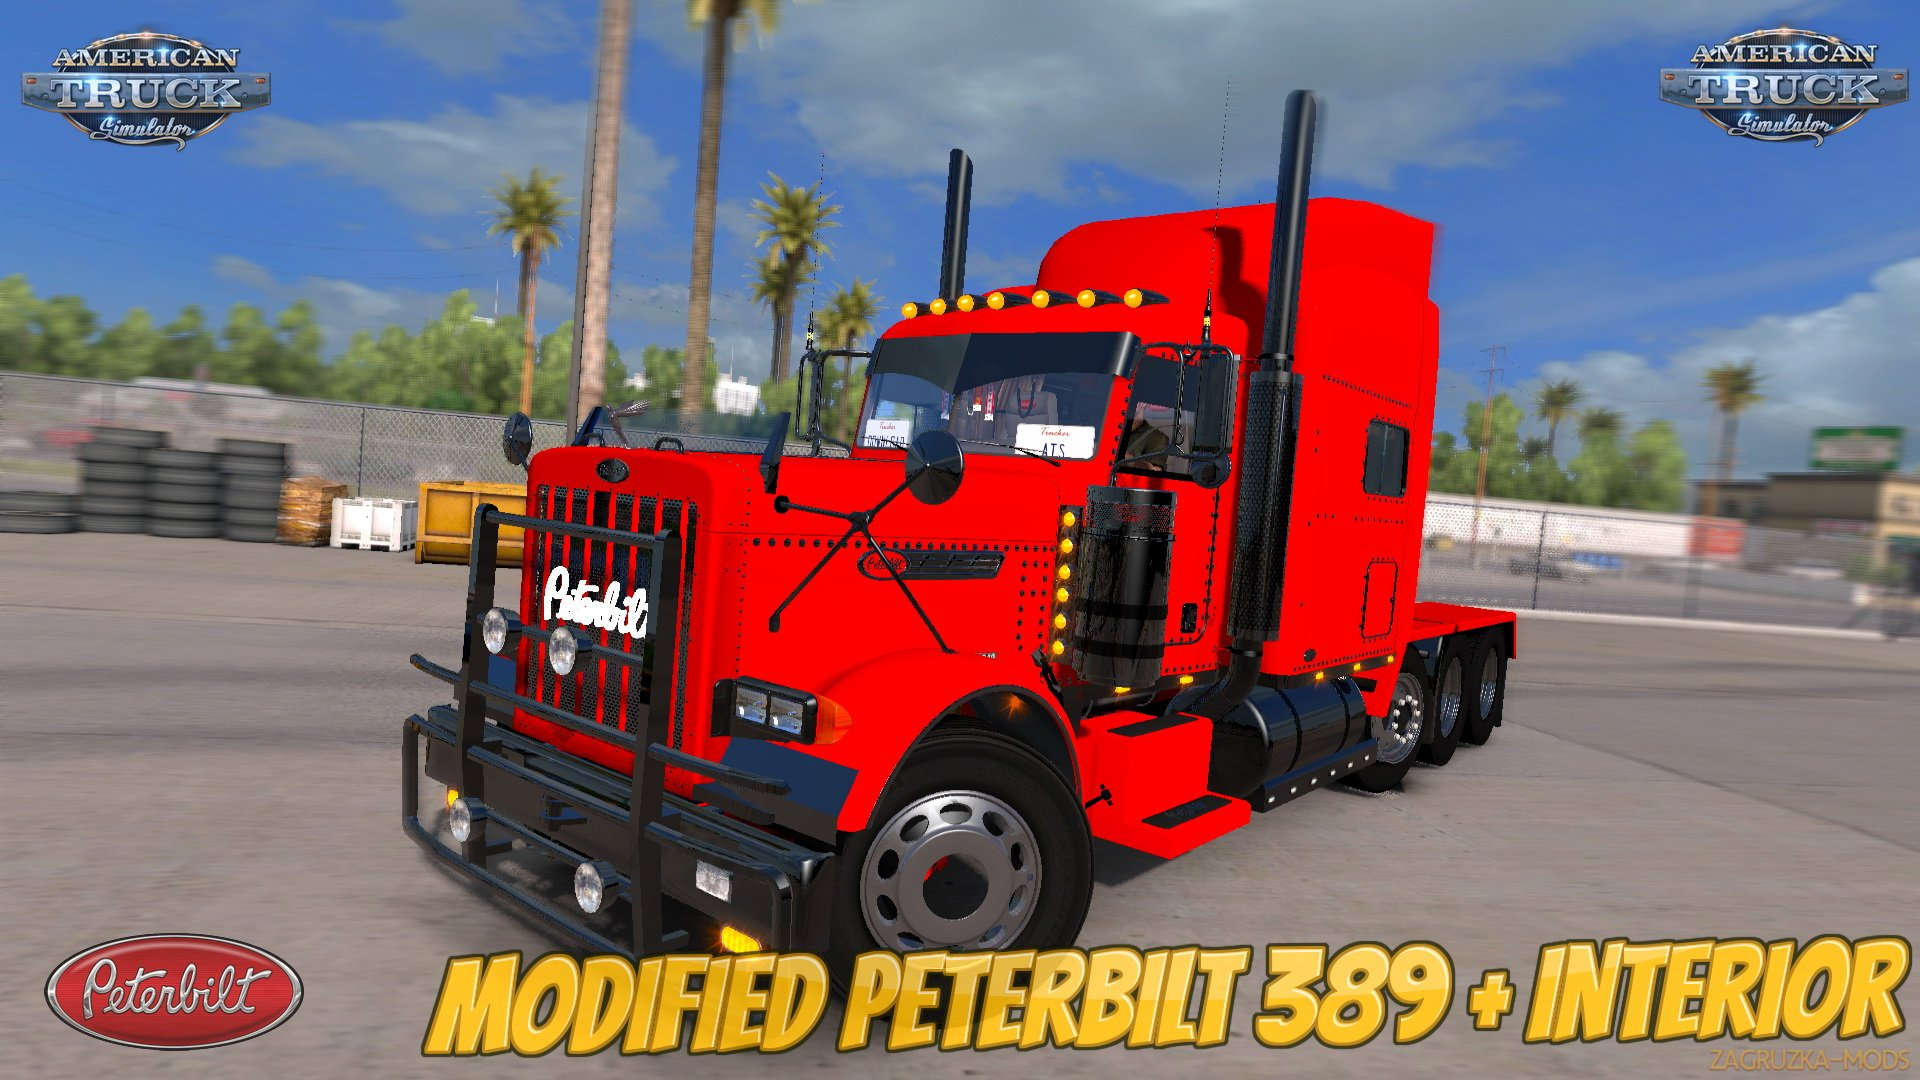 Modified Peterbilt 389 + Interior v2.2.1 (1.32.x) for ATS